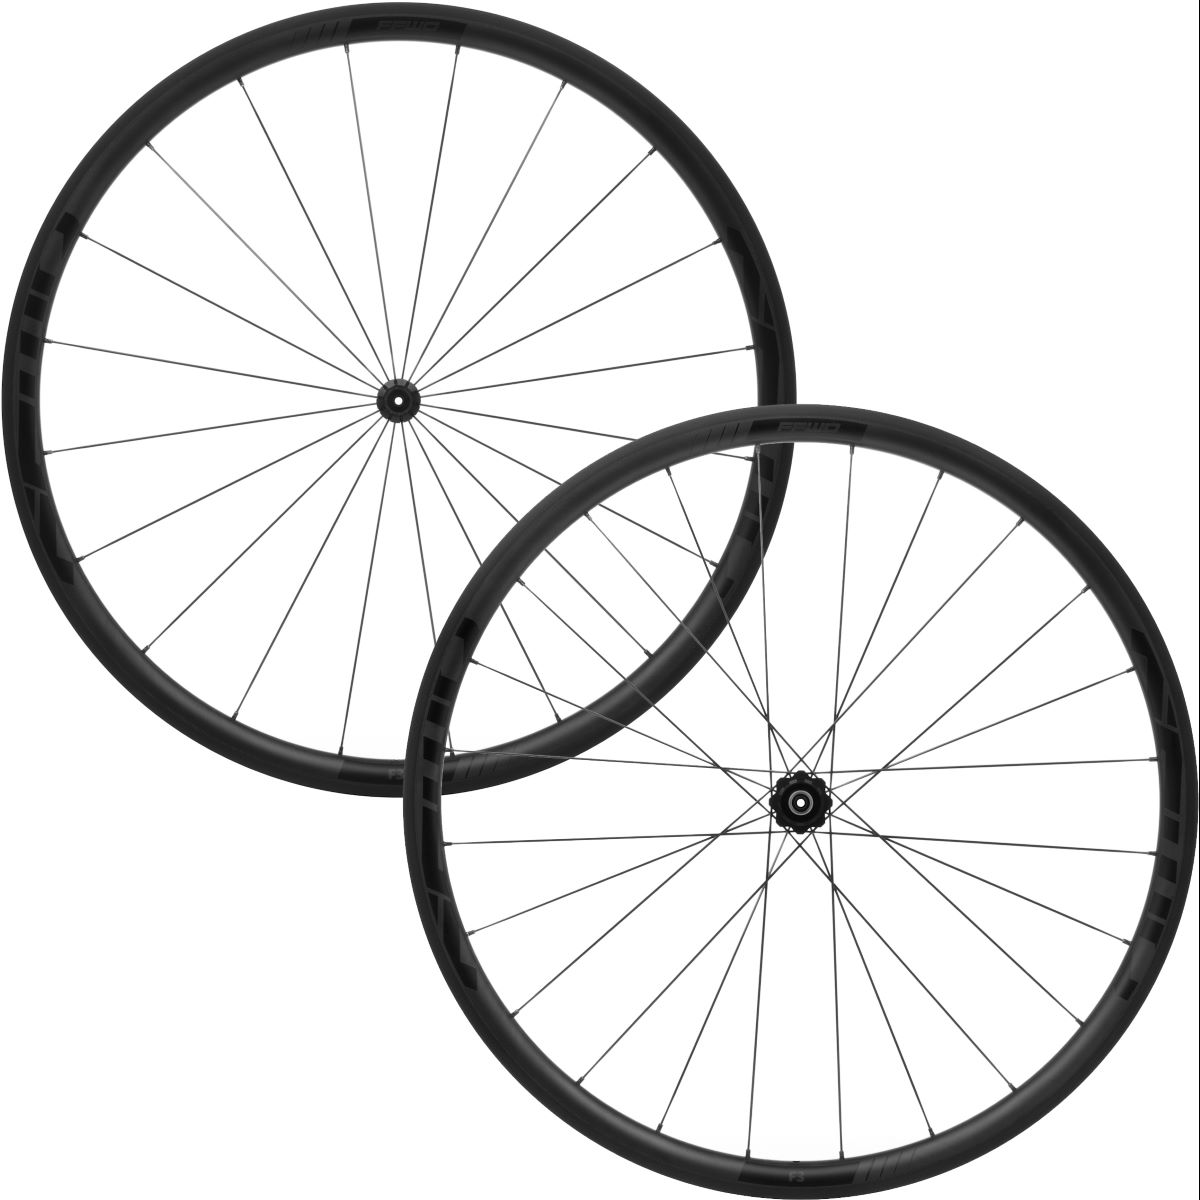 Fast Forward Fast Forward F3R DT350 Carbon Disc Road Wheelset   Wheel Sets